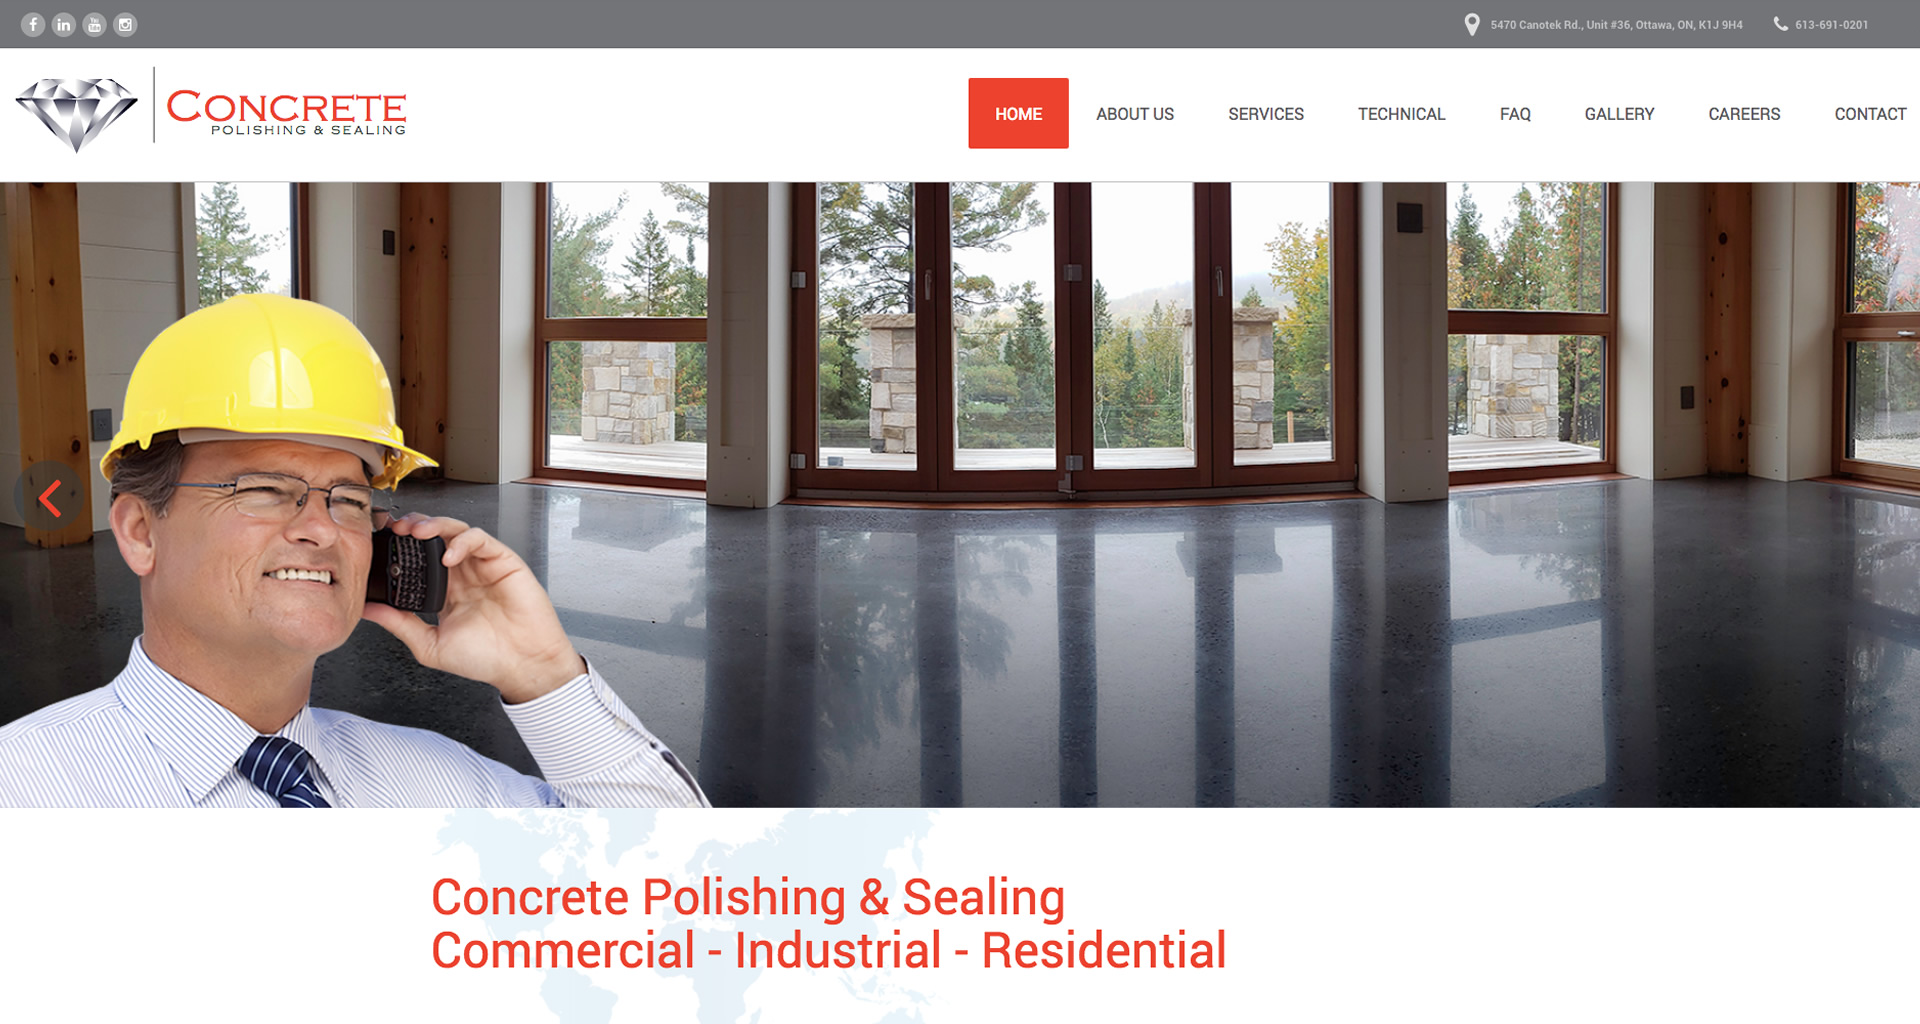 Concrete Polishing & Sealing Ltd webdesign by 45 Degrees Latitude